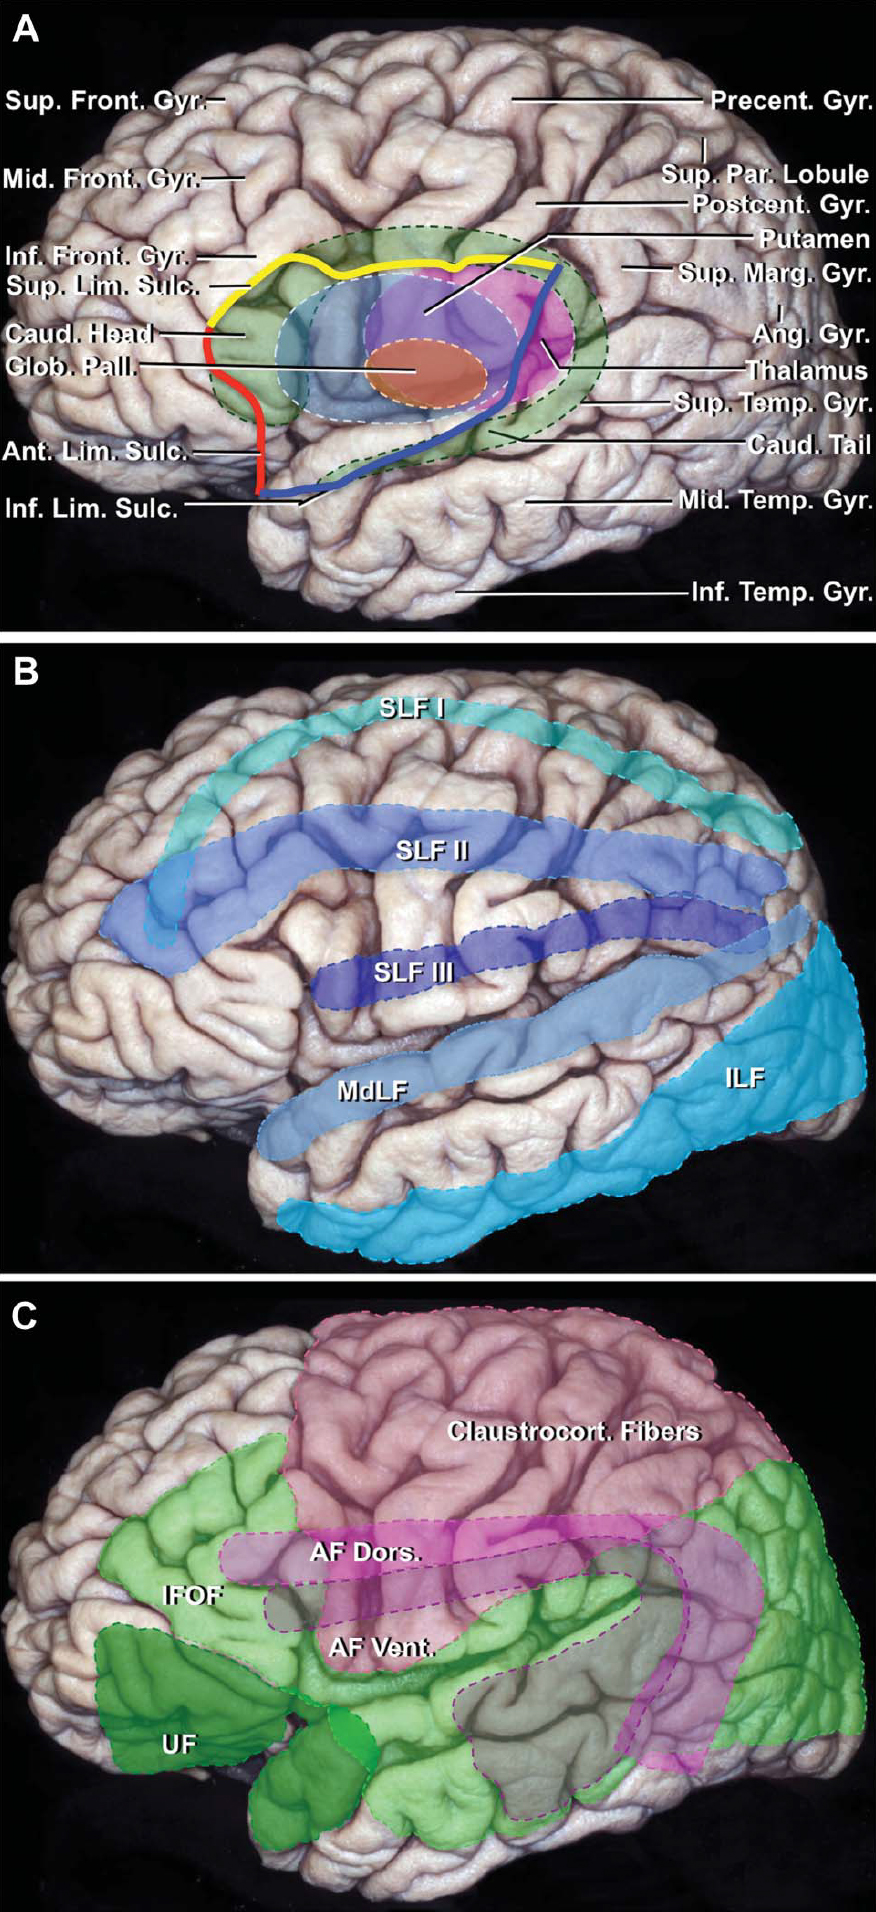 Figure 5 (A–C). A, the structures in the central core of the cerebrum have been superimposed on the cortical surface. The anterior (red), superior (yellow), and inferior (blue) limiting sulci outline the lateral surface of the central core formed by the insula. The anterior limiting sulcus is located deep to the anterior edge of the pars triangularis. The anterior part of the superior limiting sulcus is located medial to the inferior frontal gyrus, and the posterior part of the sulcus is located medial to the junction of the lower and middle third of the pre- and postcentral gyri and anterior part of the supramarginal gyrus. The inferior limiting sulcus is located deep to the superior temporal sulcus. The anterior part of the head of the caudate extends to the anterior limiting sulcus. The upper edge of the body extends slightly above the level of the superior limiting sulcus, and a segment of the tail extends backward and inferior to the level of the inferior limiting sulcus. The tail of the caudate nucleus, as it proceeds anteriorly, passes above the anterior part of the inferior limiting sulcus to blend into the amygdala. Other structures in the central core include the putamen, globus pallidus, and thalamus. B, long association pathways. The SLF I extends deep to the superior frontal gyrus and the superior parietal lobule. The SLF II passes deep to the middle frontal gyrus and midlevel of the pre- and postcentral gyri and deep to the upper part of the supramarginal and angular gyri. The SLF III passes deep to the inferior frontal gyrus, the lower part of the pre- and postcentral gyri, and the lower part of the supramarginal gyrus. The MdLF passes deep to or through the superior temporal and angular gyri and the ILF medial to the inferior temporal gyrus and dorsolateral occipital cortex. C, position of the UF, IFOF, claustrocortical fibers, and the dorsal and ventral segments of the AF in relation to the cortical surface. The UF passes medial to the temporal pole, anterior part of the superior and middle temporal gyri, and limen insulae and connects to the medial and lateral orbitofrontal areas. The IFOF passes deep to the mid part of the middle frontal gyrus and anterior part (pars orbitalis and triangularis) of the inferior frontal gyrus. In the insular area, the IFOF passes deep to the short insular gyri and limen insulae, and deep to the superior and middle temporal gyri, posterior part of the inferior parietal lobe, and occipital lobe. The claustrocortical fibers pass deep to the part of the cerebral cortex between the supplementary motor area anteriorly and posterior parietal lobe posteriorly. The claustrocortical fibers form the dorsal external capsule, and the IFOF and UF form the ventral external capsule. The AF ventral segment is positioned ventral to the AF dorsal segment in the area above the sylvian fissure, but anterior and dorsal to the dorsal segment below the fissure. The AF ventral segment passes deep to the mid part of the superior and middle temporal gyri, posterior part of the superior temporal gyrus, lower part of the supramarginal gyrus, and post- and precentral and inferior frontal gyri. The AF dorsal segment passes deep to the posterior part of the middle and inferior temporal gyri, lower part of the angular gyrus, post- and precentral gyri, and posterior part of the middle and inferior frontal gyri. AF, arcuate fasciculus; Ang., angular; Ant., anterior; Call., callosum; Caud., caudate; Claustrocort., claustrocortical; Comm., commissure; Corp., corpus; Dors., dorsal; Front., frontal; Glob., globus; Gyr., gyrus; IFOF, inferior fronto-occipital fasciculus; ILF, inferior longitudinal fasciculus; Inf., inferior; LGB, lateral geniculate body; Lim., limiting; Marg., marginal; MdLF, middle longitudinal fasciculus; Mid., middle; Pall., pallidus; Par., parietal; Postcent., postcentral; Precent., precentral; Rad., radiations; SLF, superior longitudinal fasciculus; Sulc., sulcus; Sup., superior; Temp., temporal; Thal., thalamic; UF, uncinate fasciculus; Vent., ventral. (Images courtesy of AL Rhoton, Jr.)